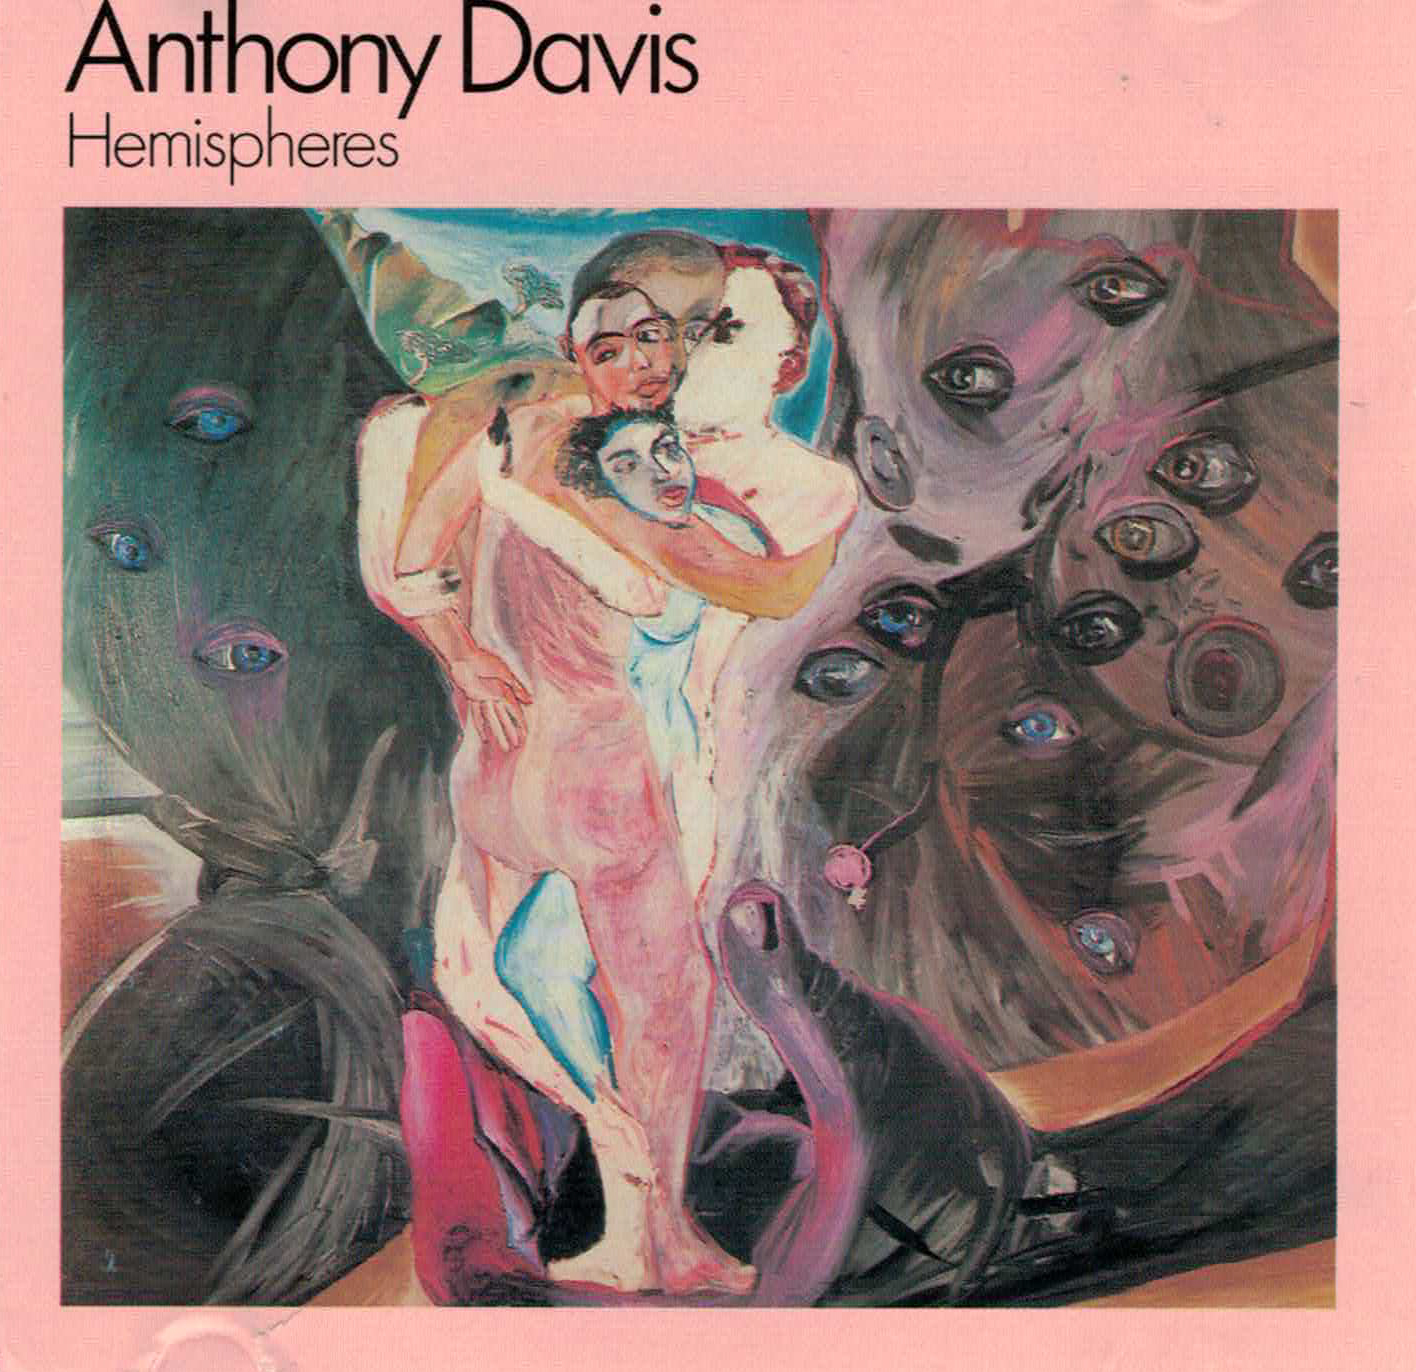 ANTHONY DAVIS, HEMISPHERES